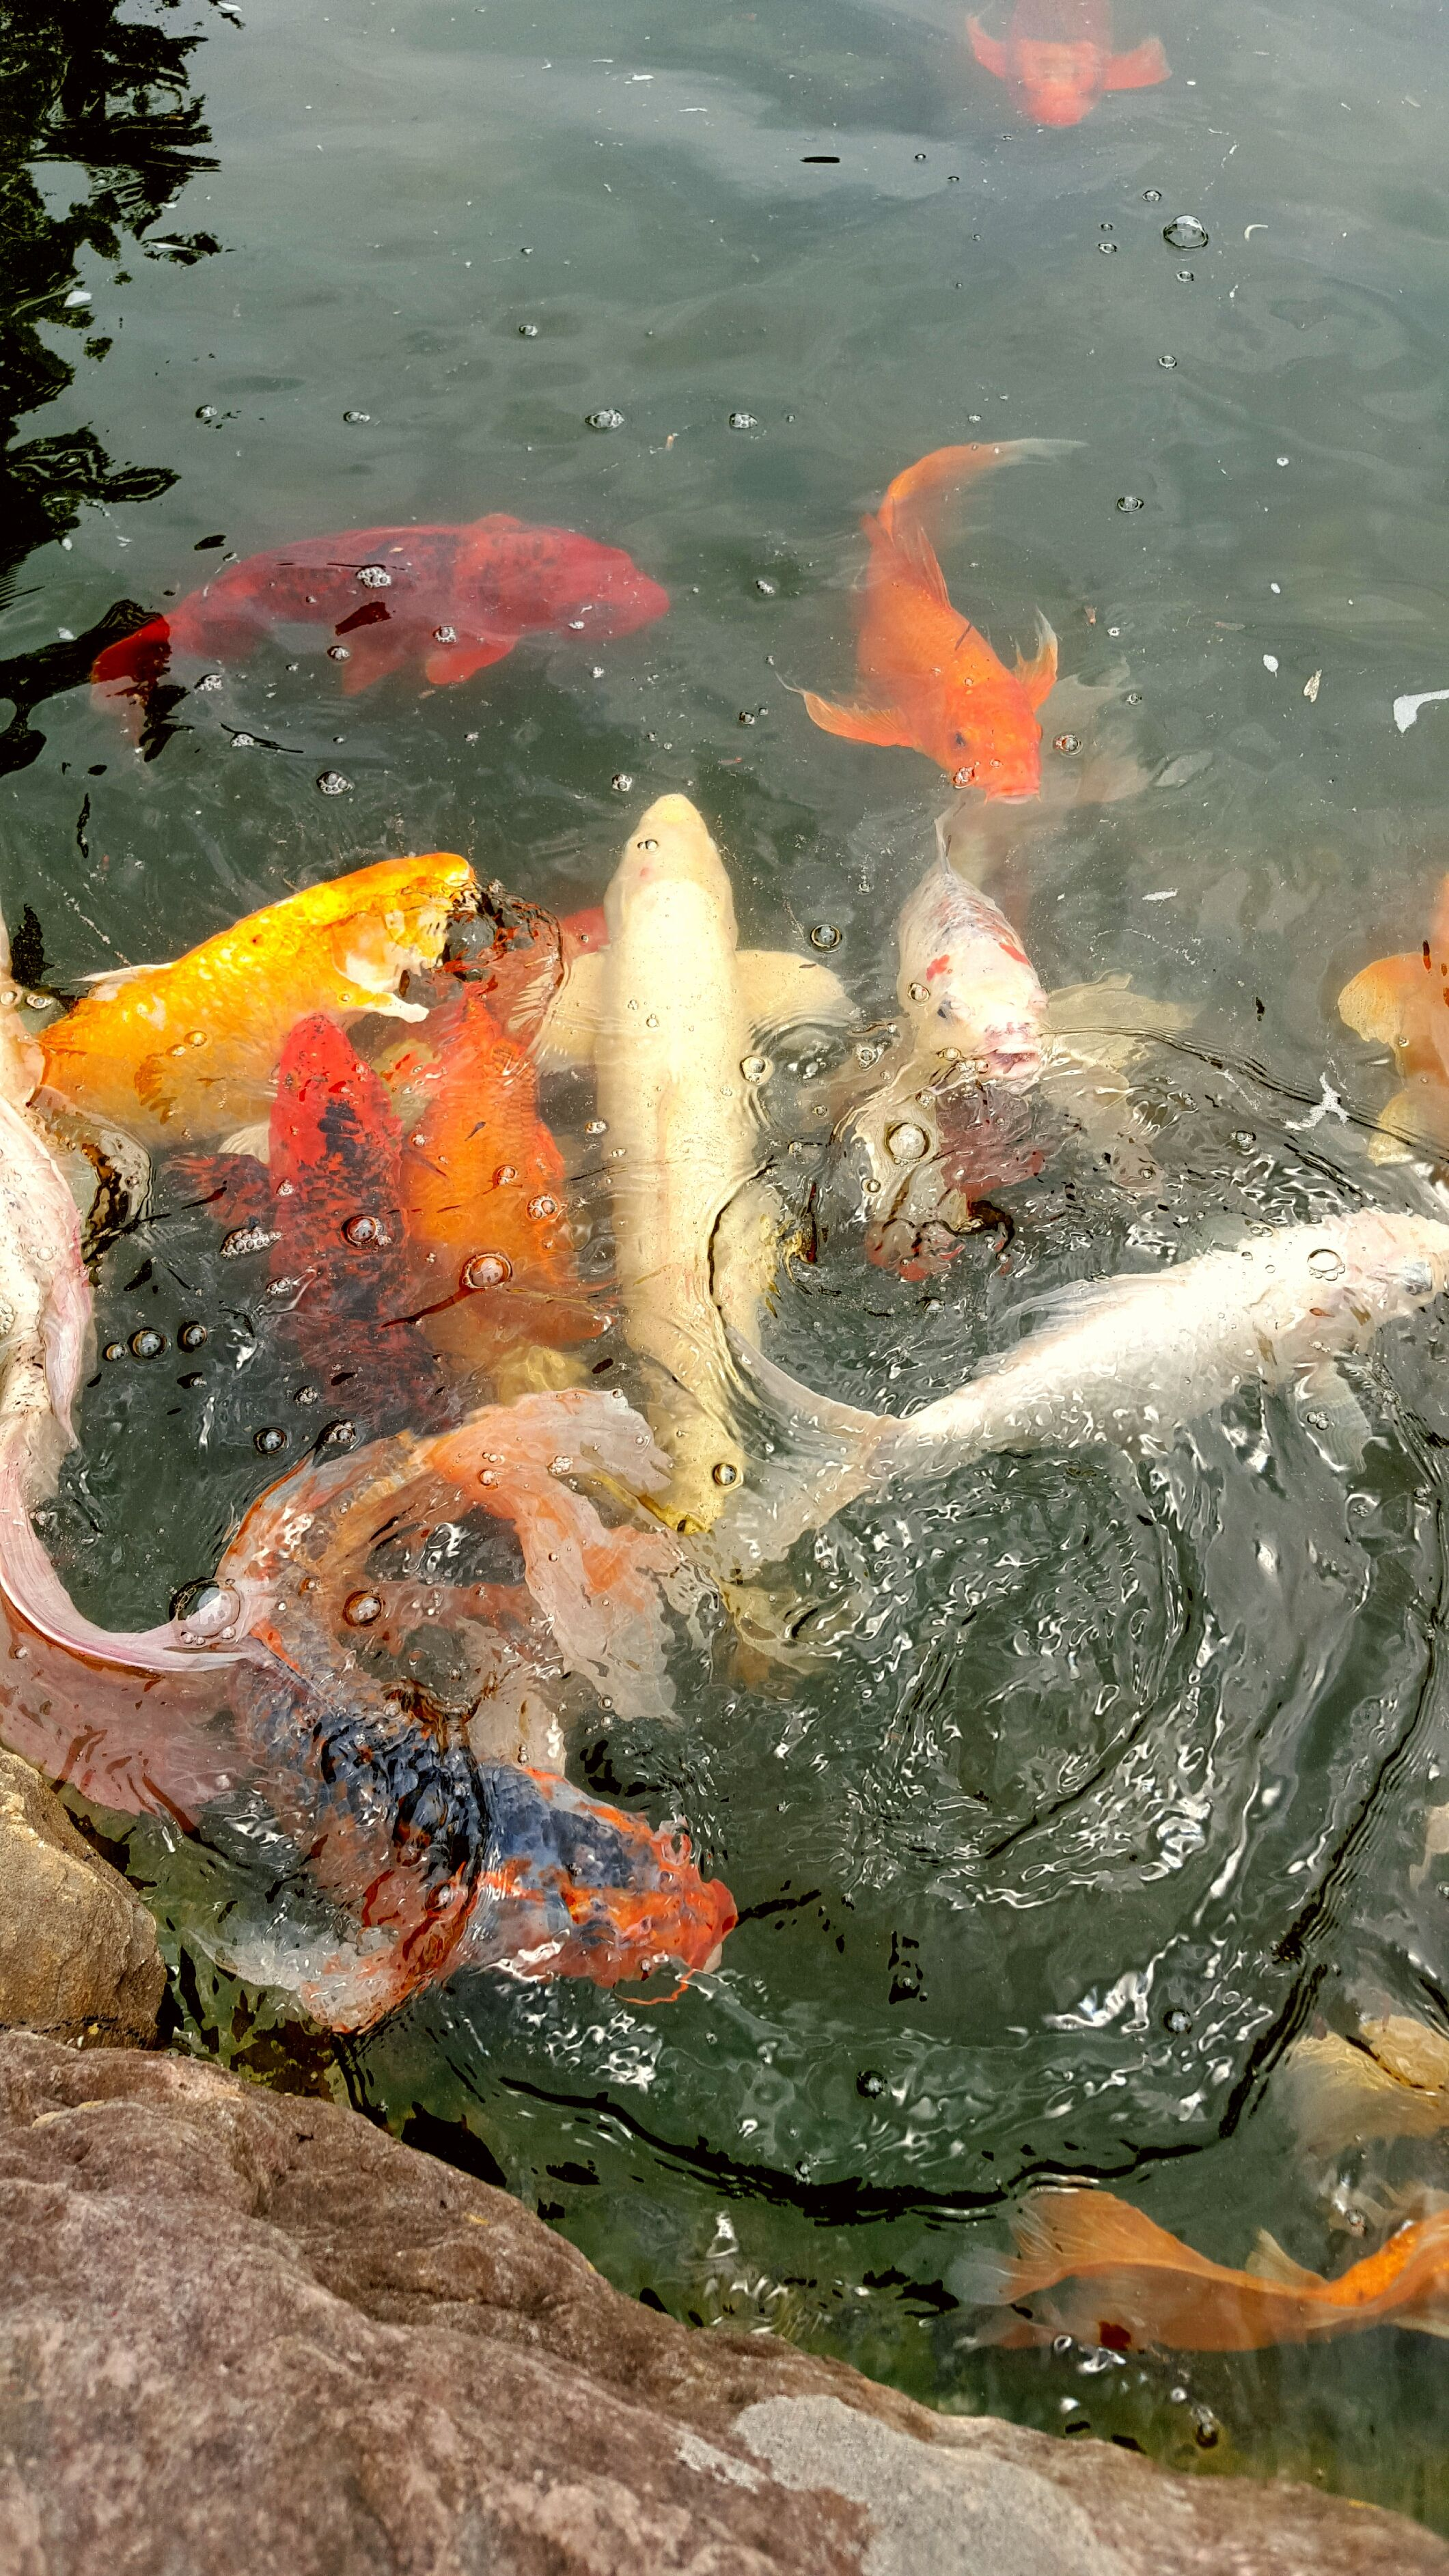 creating a clean healthy pond filled with aquatic life is simple